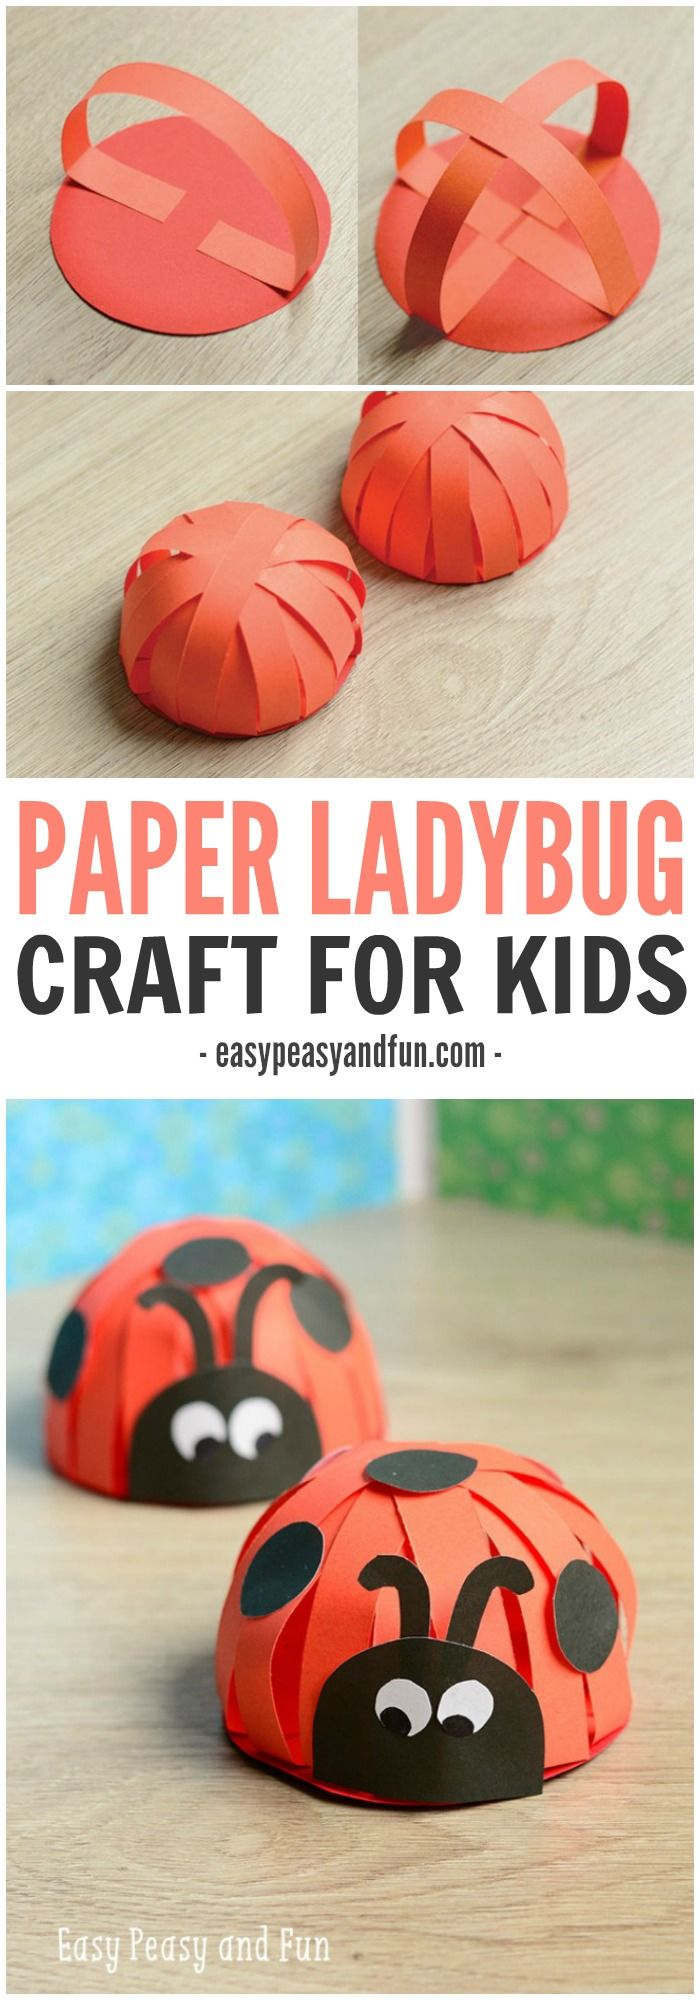 Adorable Paper Ladybug Craft